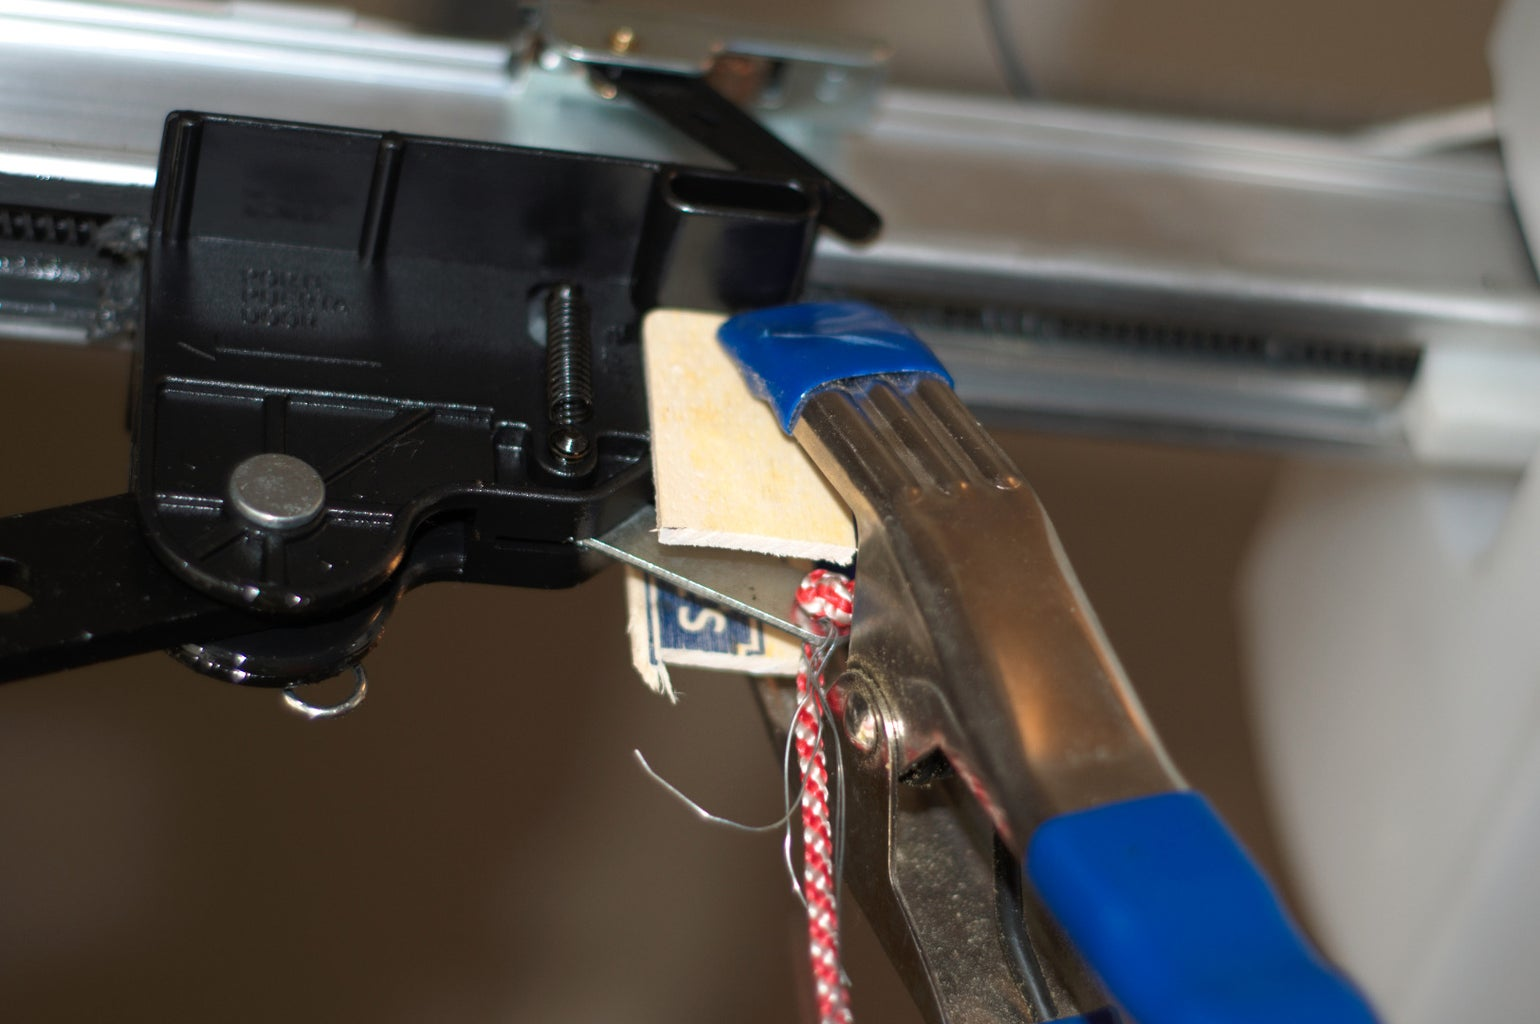 Use High Strength Multi-surface Adhesive to Attach the Barriers to the Release and Clamp Until Dry